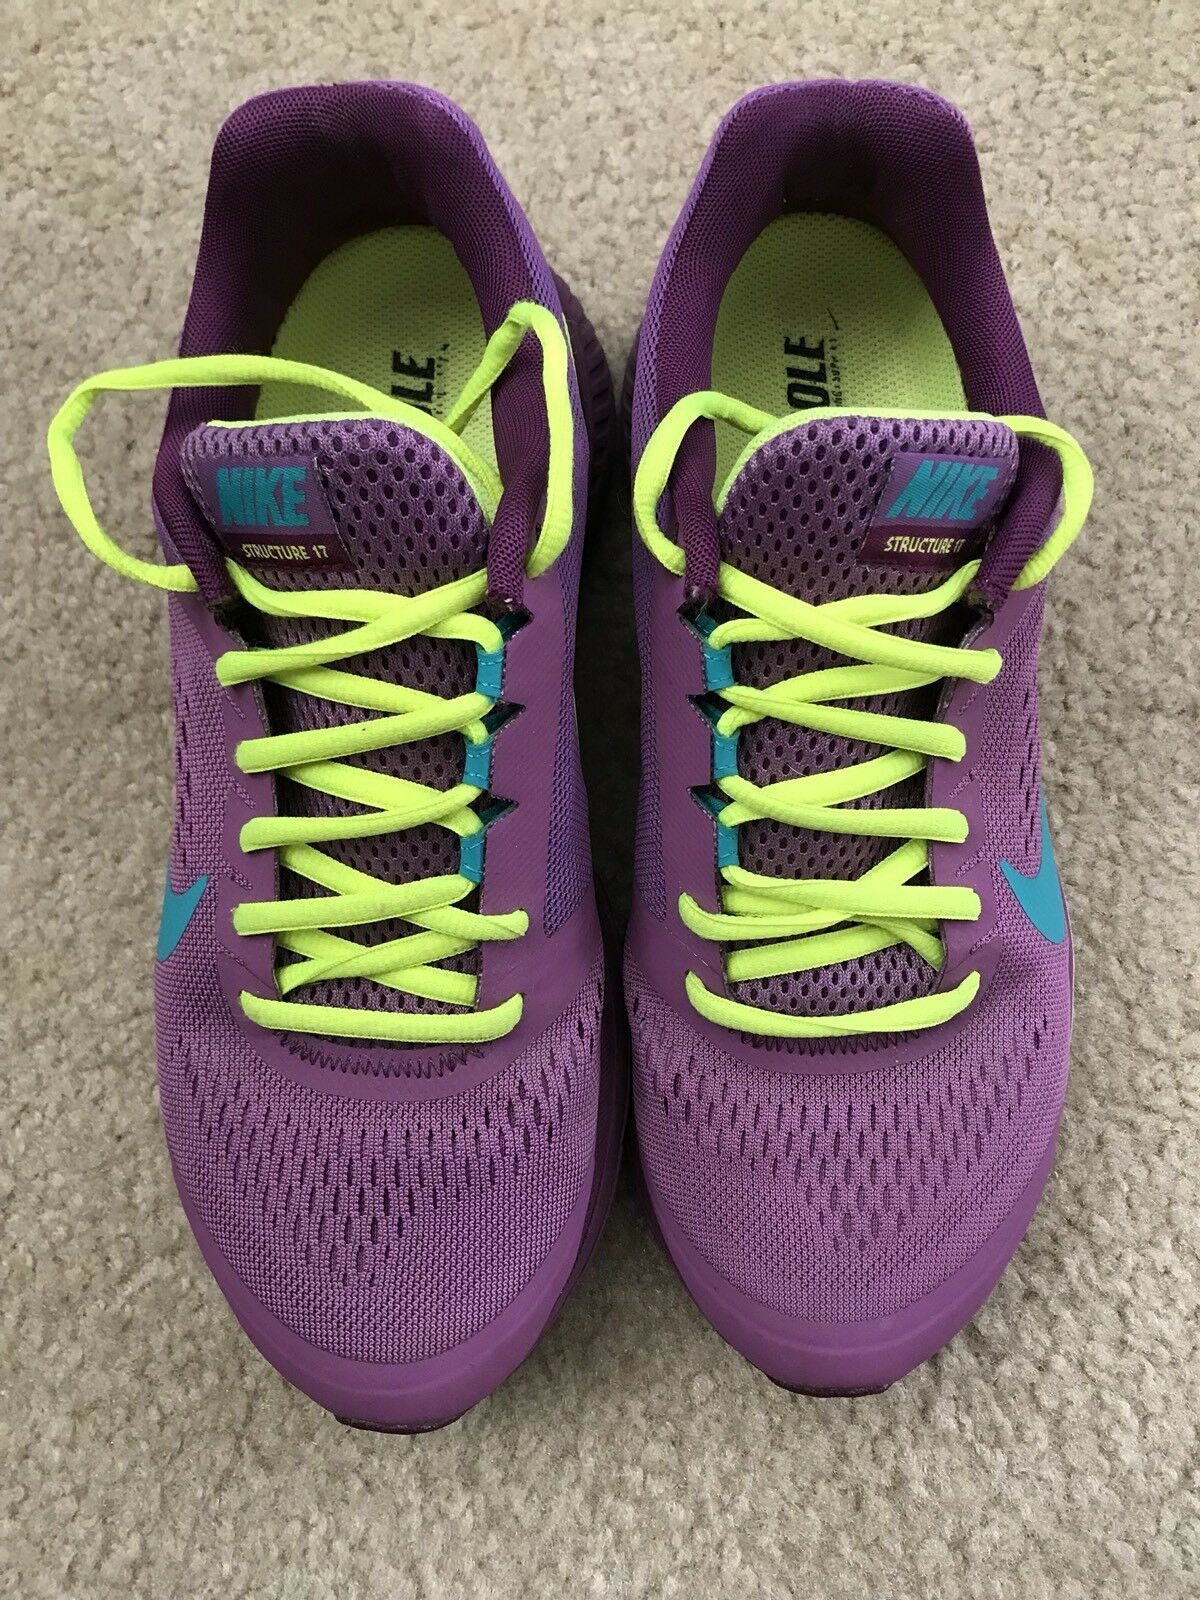 Women's Nike structure 17 Size 8.5